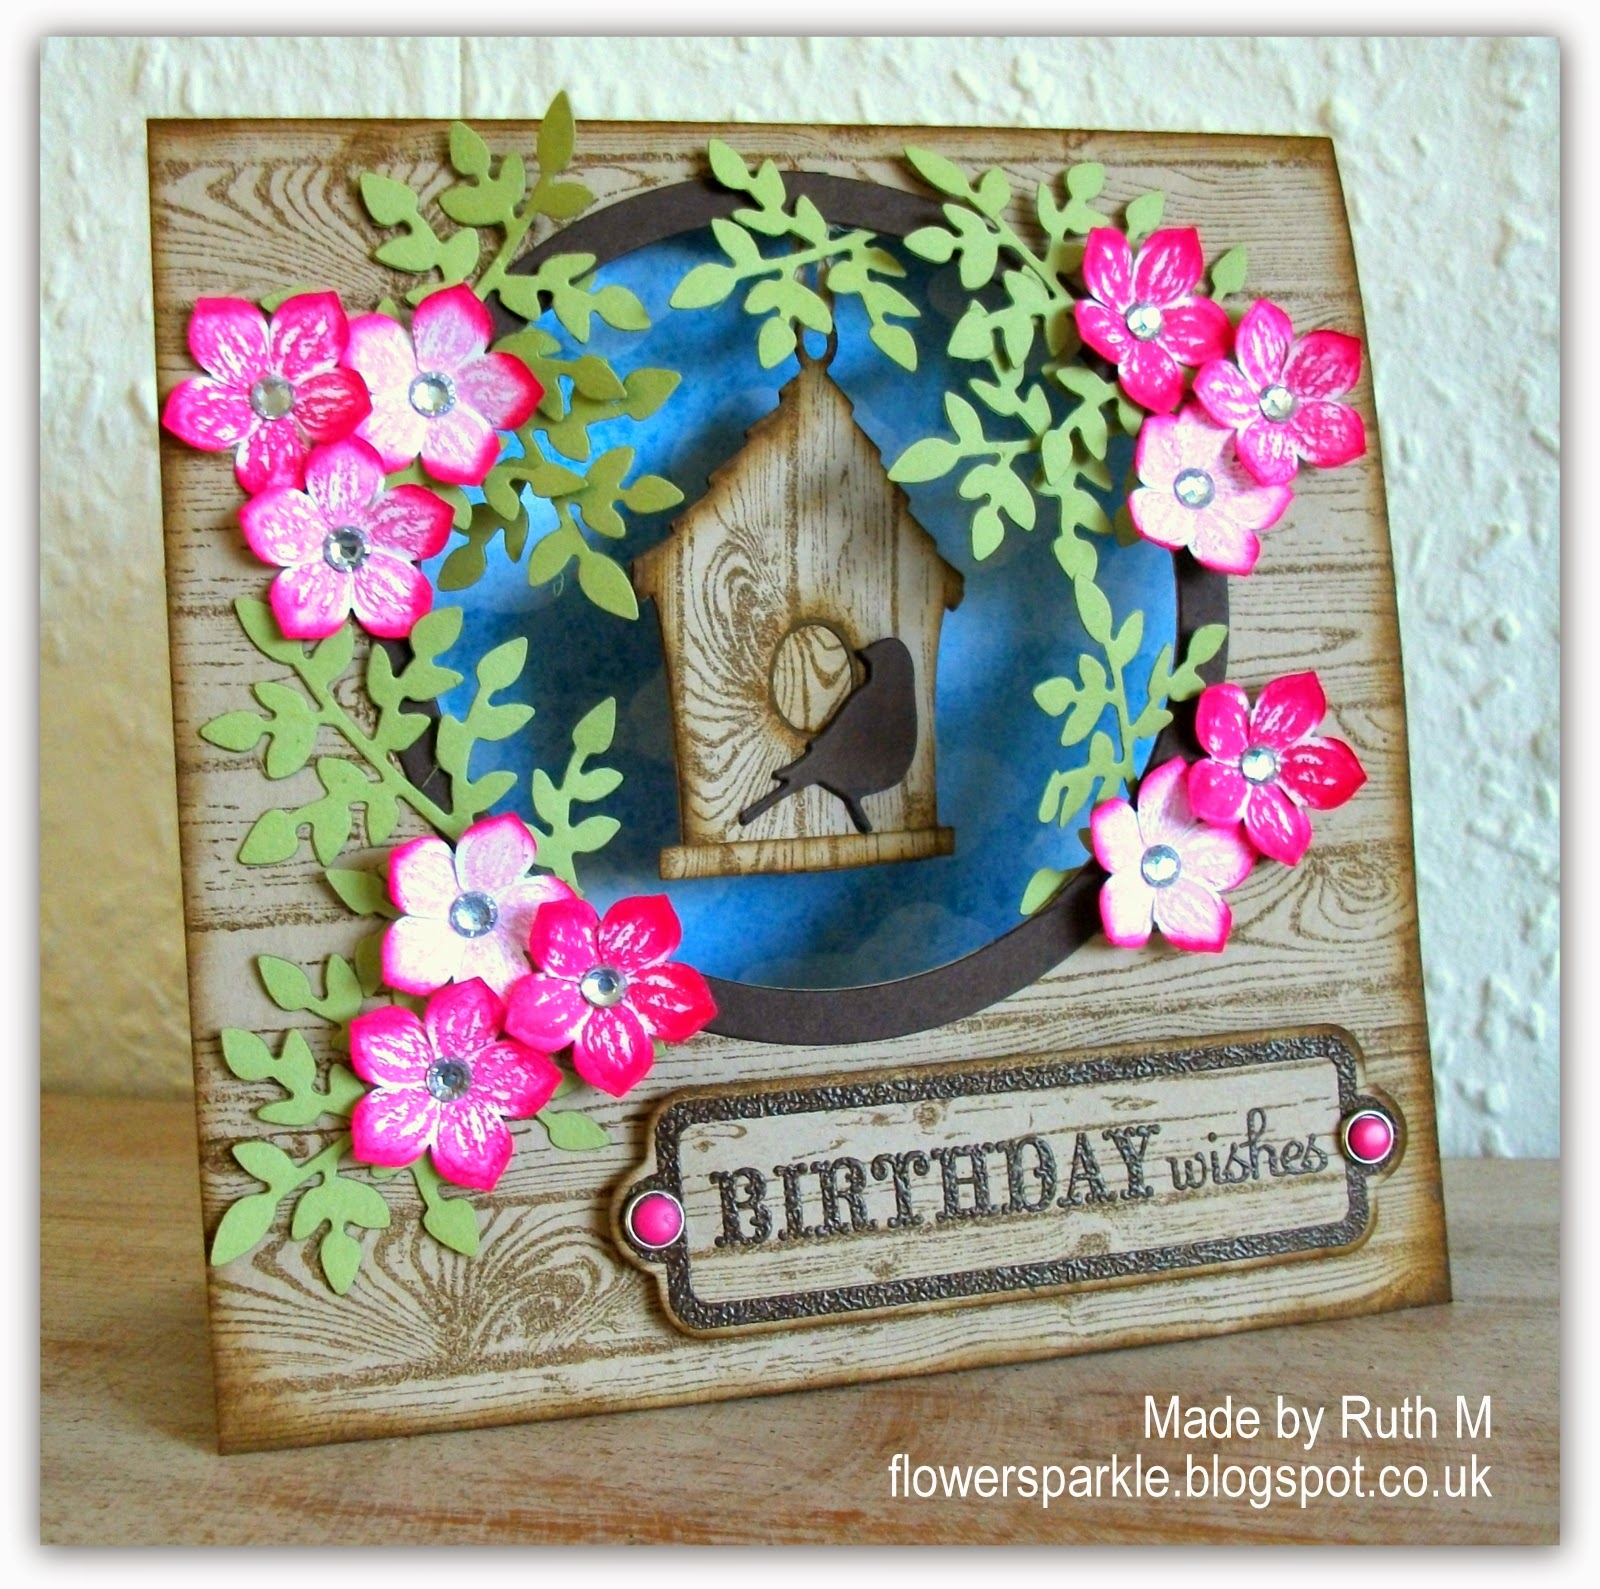 Flower Sparkle Dangly Birdhouse Birthday Wishes Tent Card For Jan